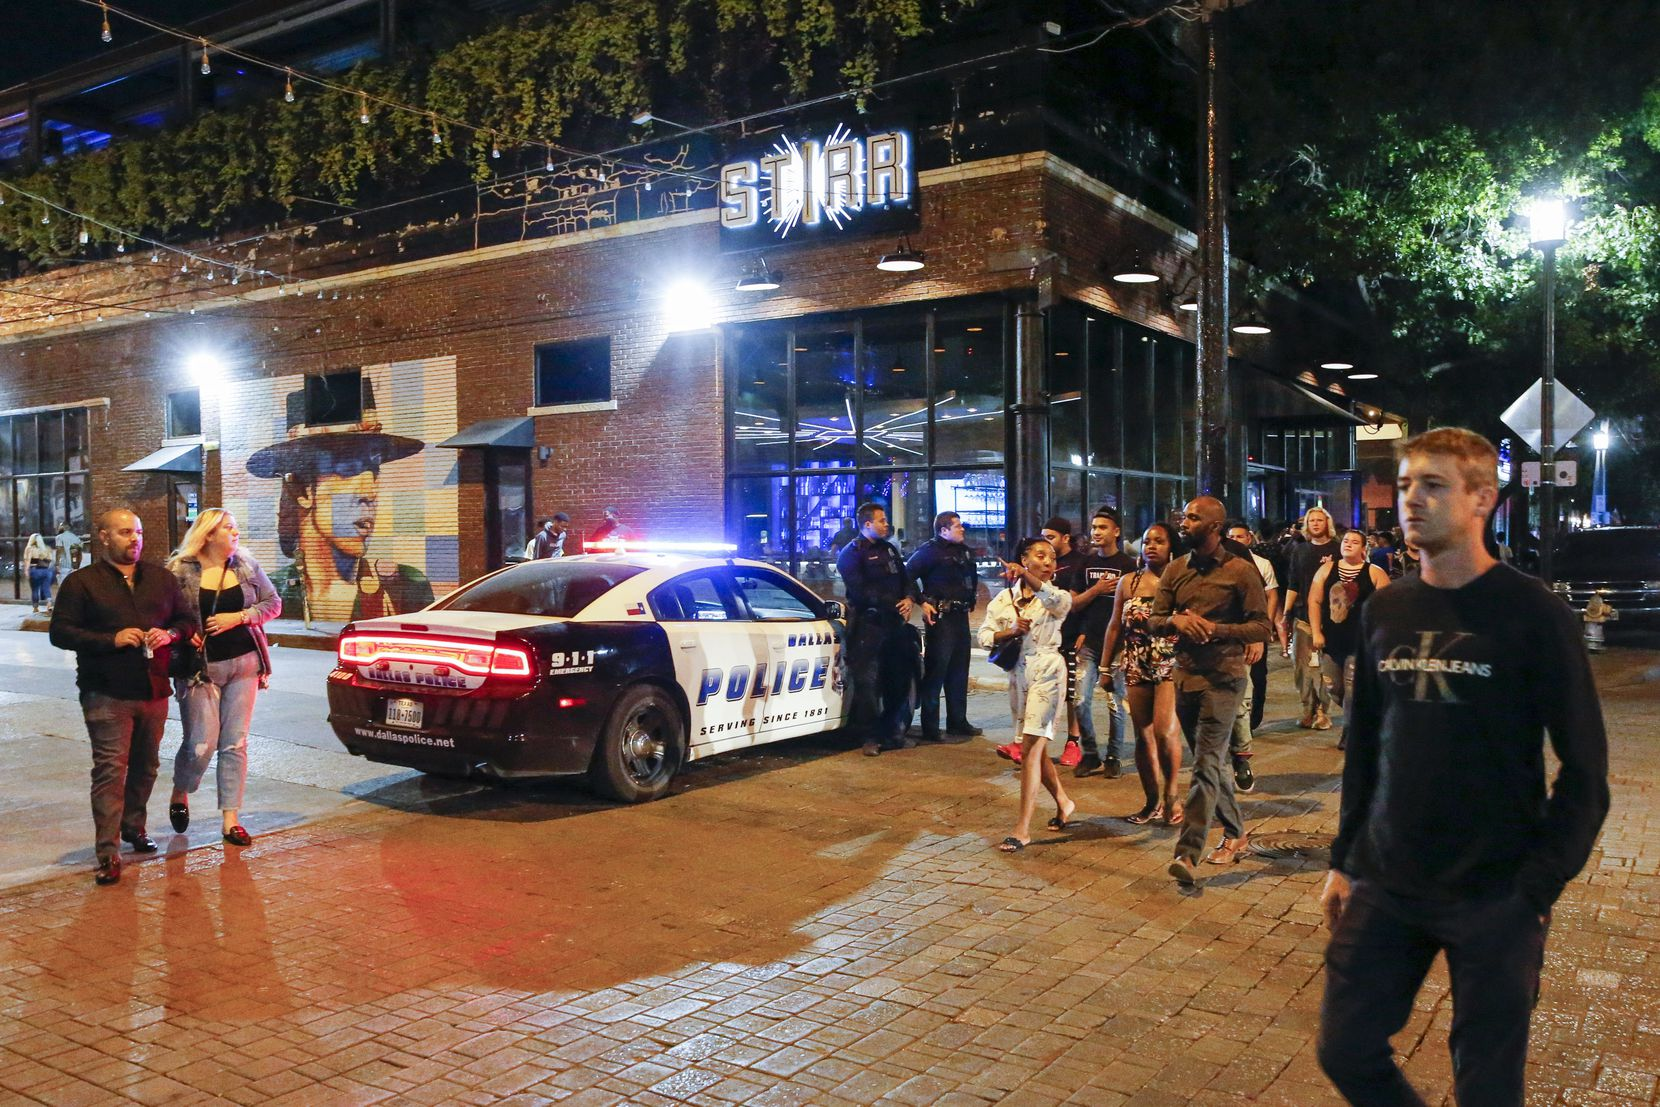 Dallas police officers stand on patrol at Crowdus and Main streets in Deep Ellum. Block after block in the entertainment district, the Dallas Police Department was on the scene to help ensure safety.